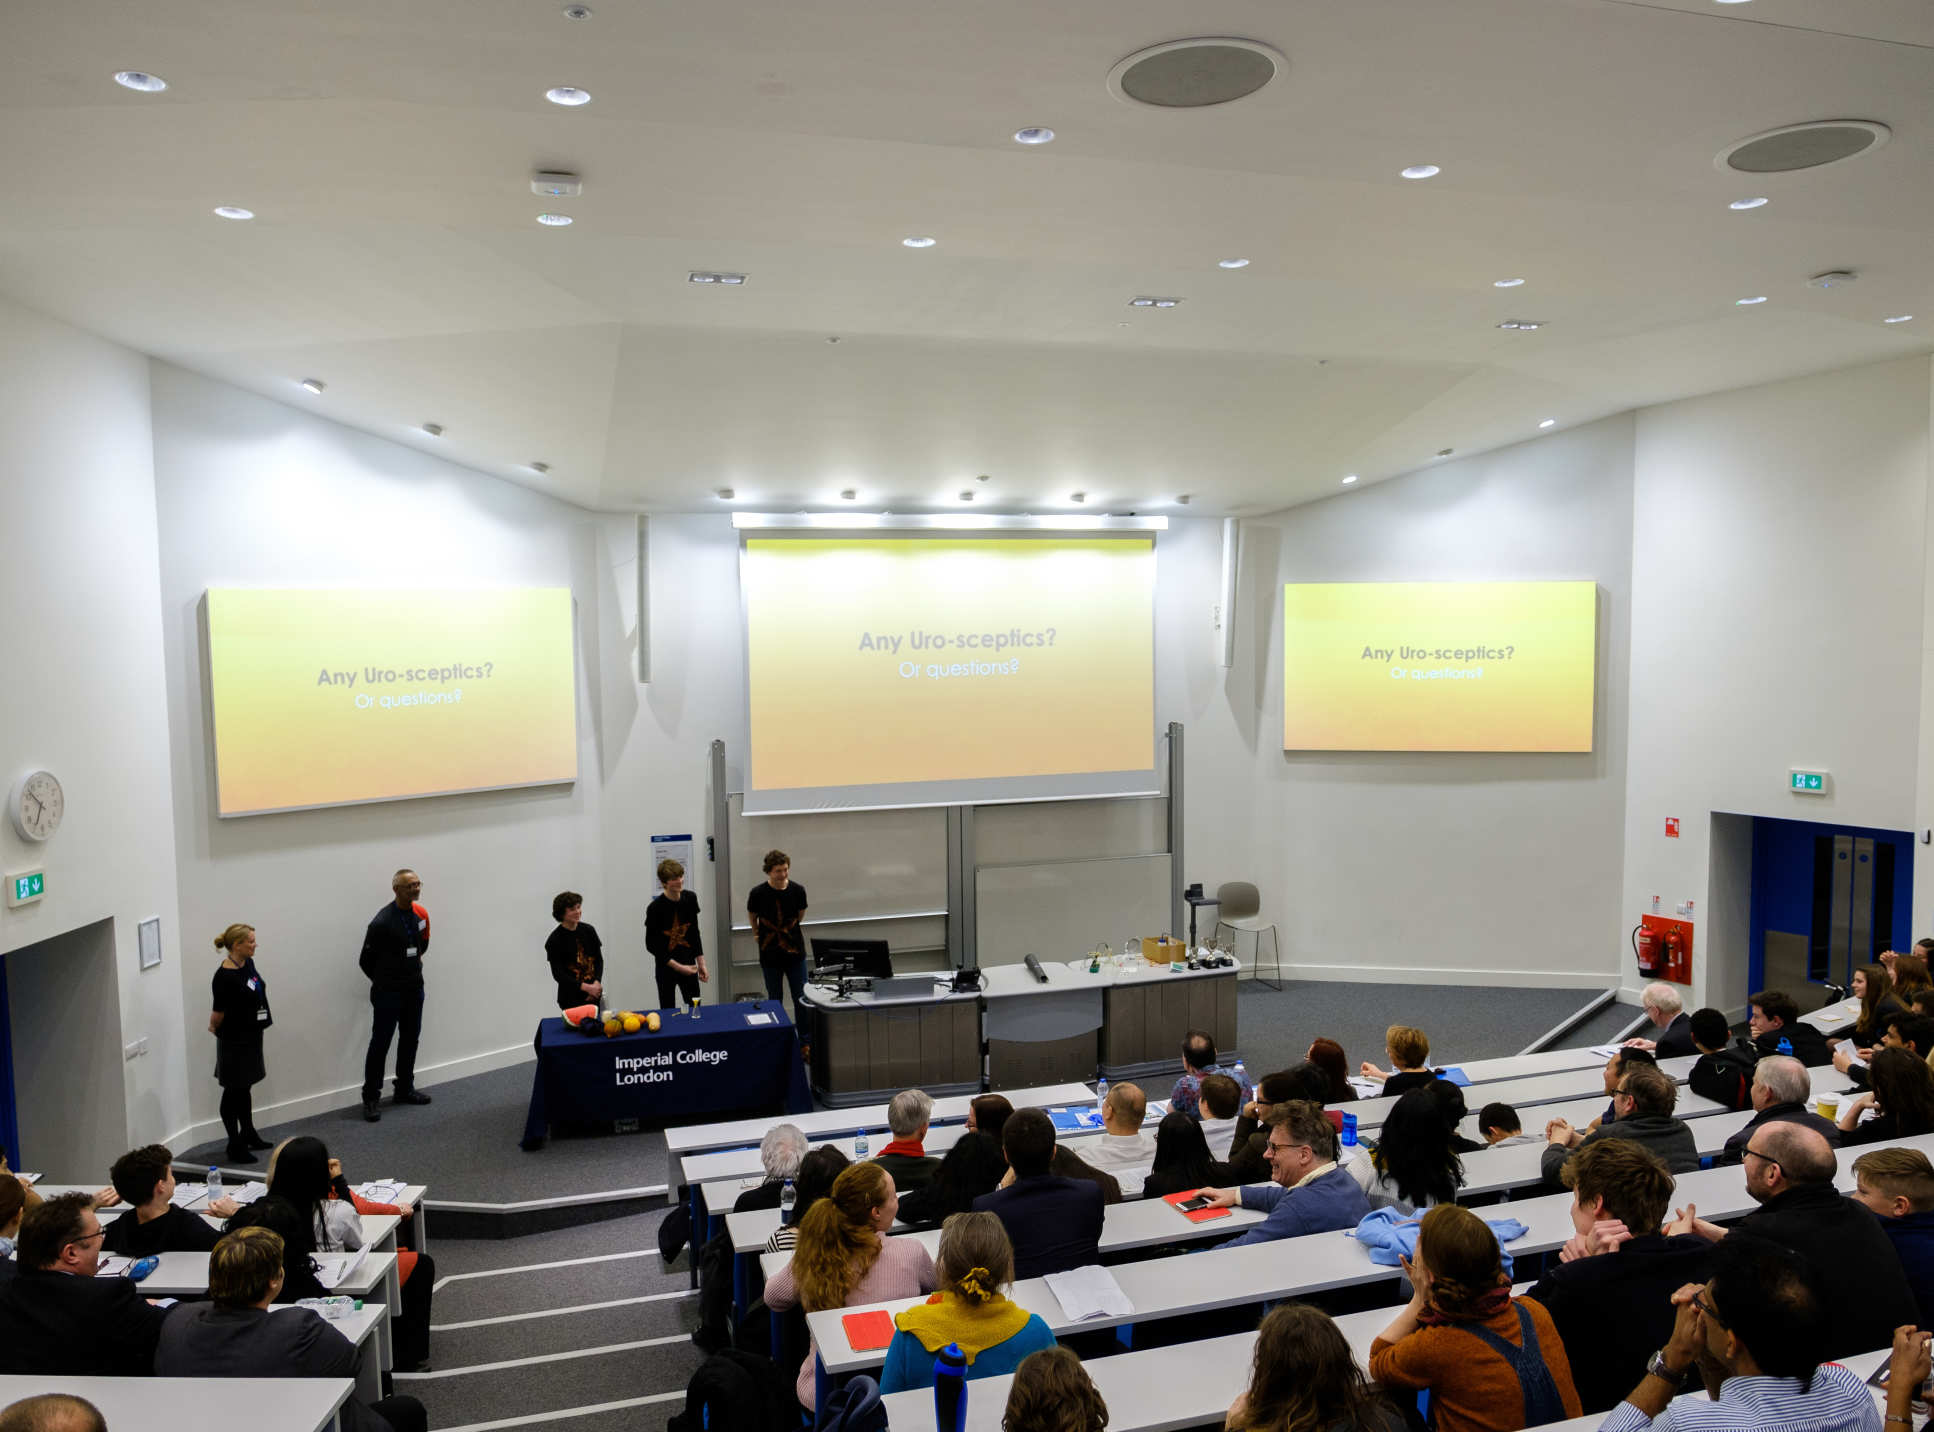 School students presenting their ideas to the audience and panel of judges in a lecture theatre